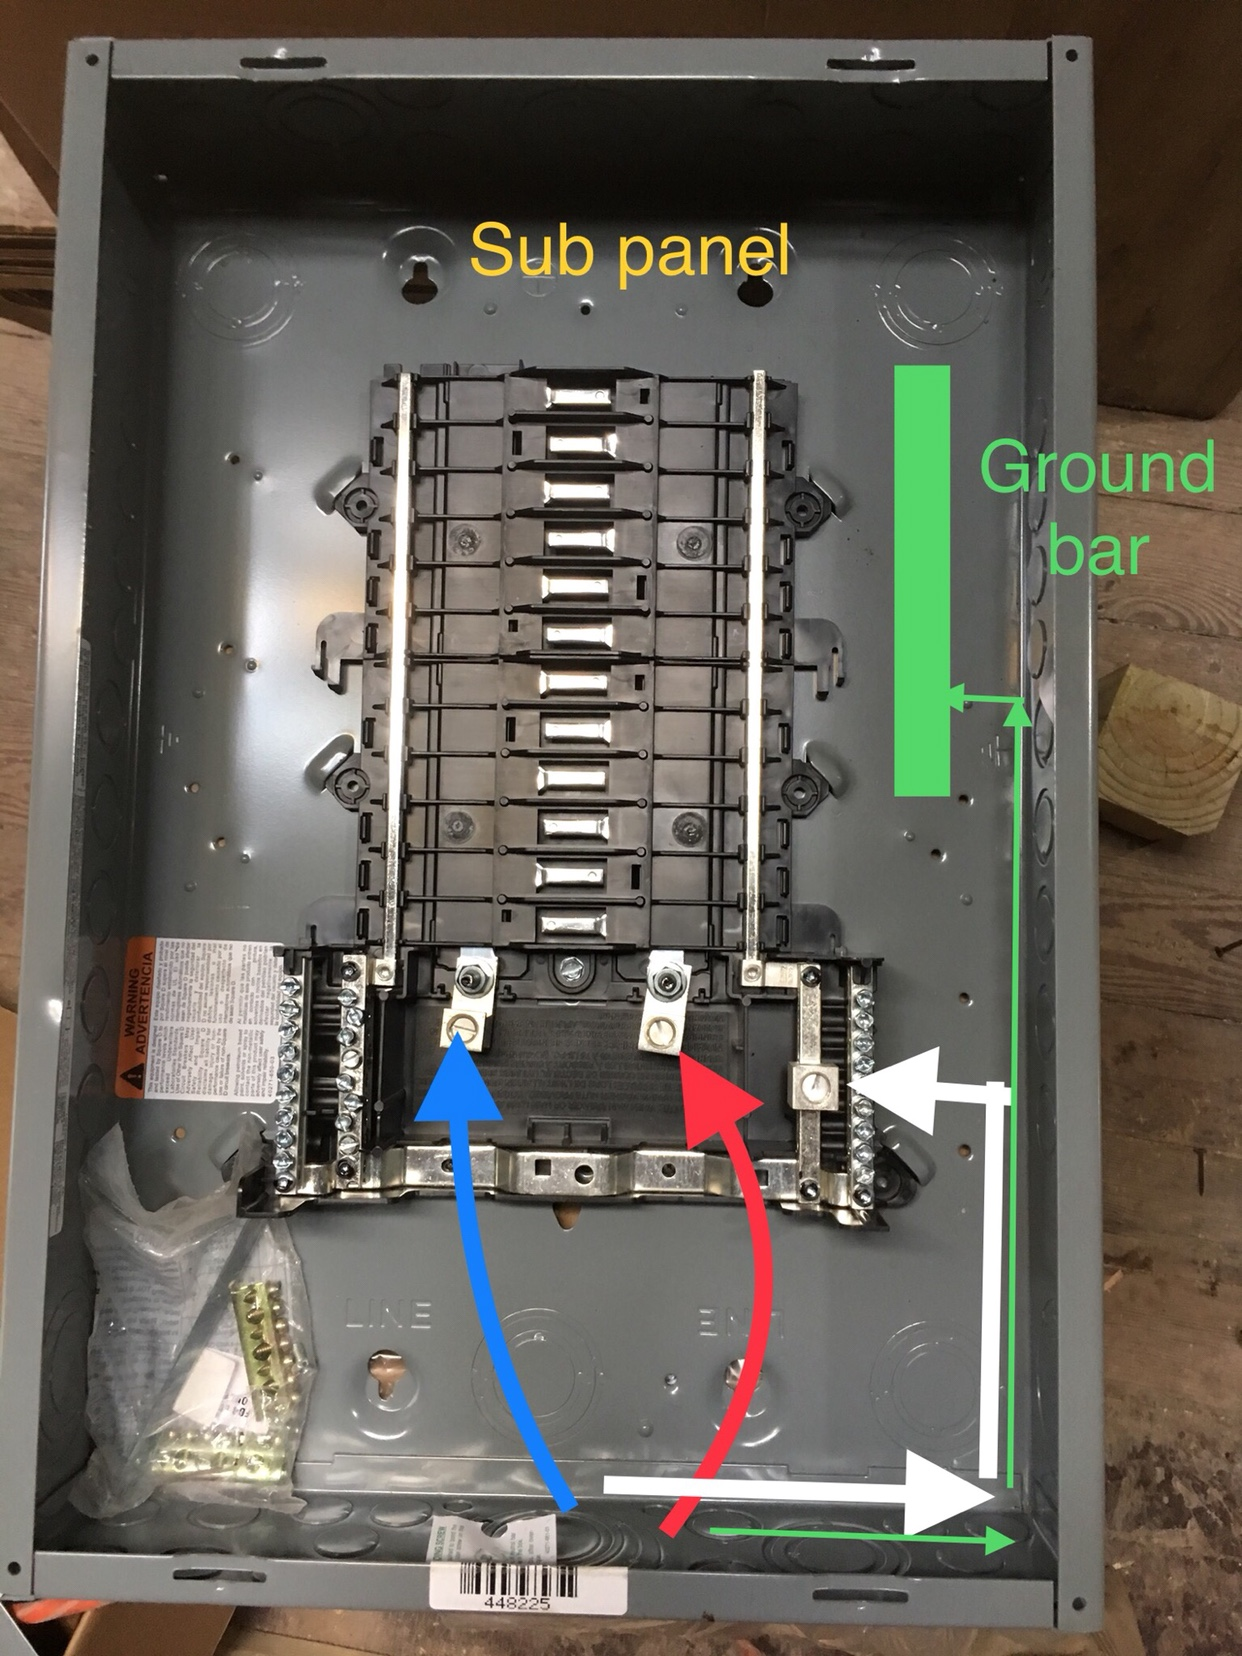 Running Service Wires In A Electrical Panel